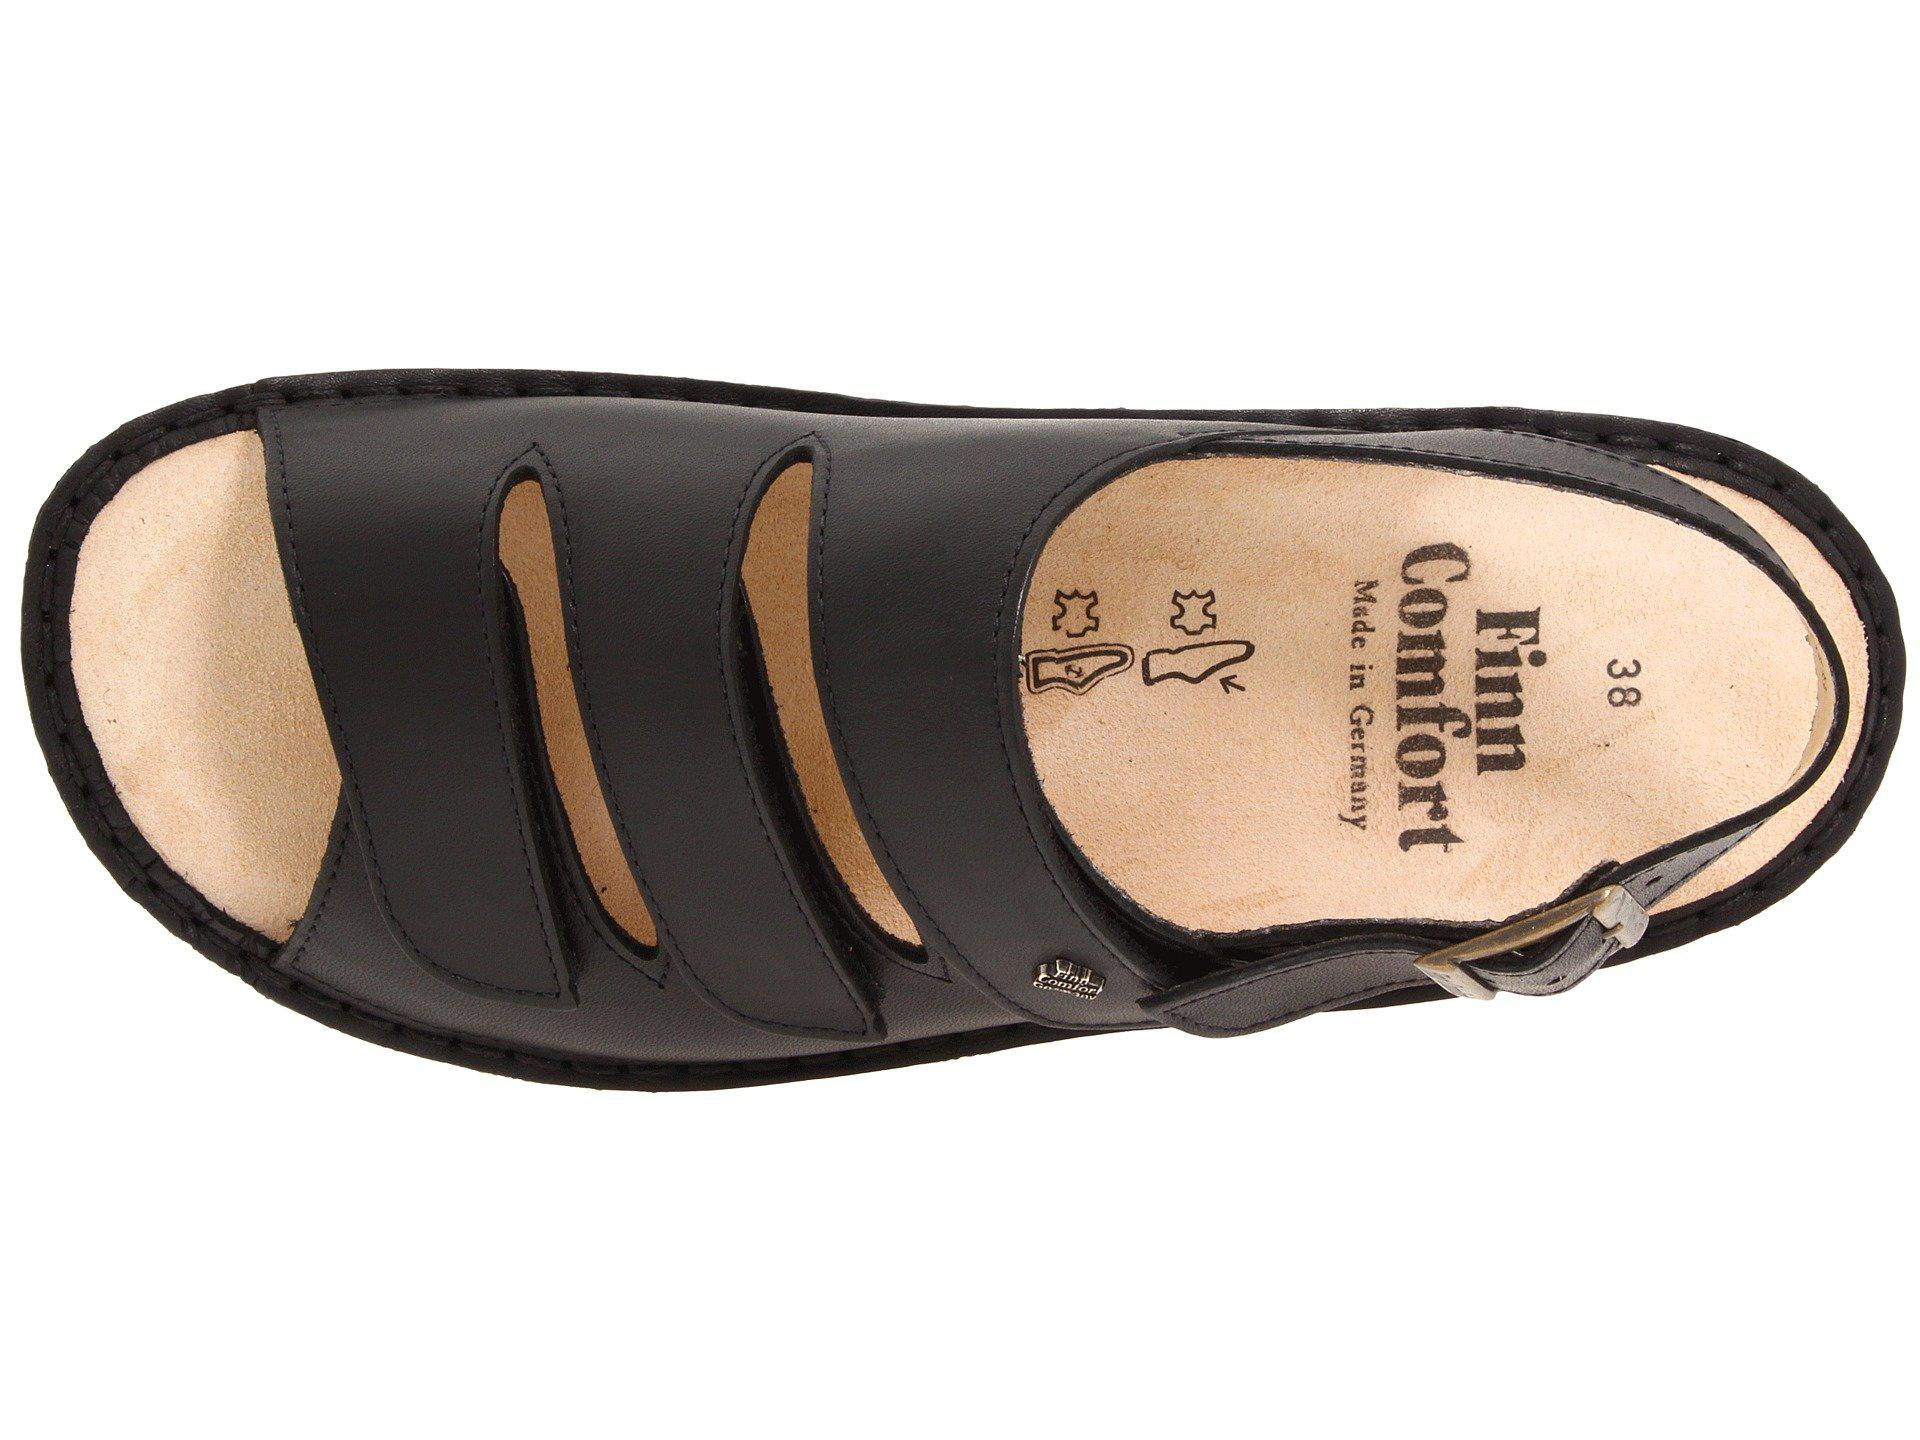 d7df67811d4a Finn Comfort - Sylt - 82509 (black Nappa Soft Footbed) Women s Shoes -  Lyst. View fullscreen